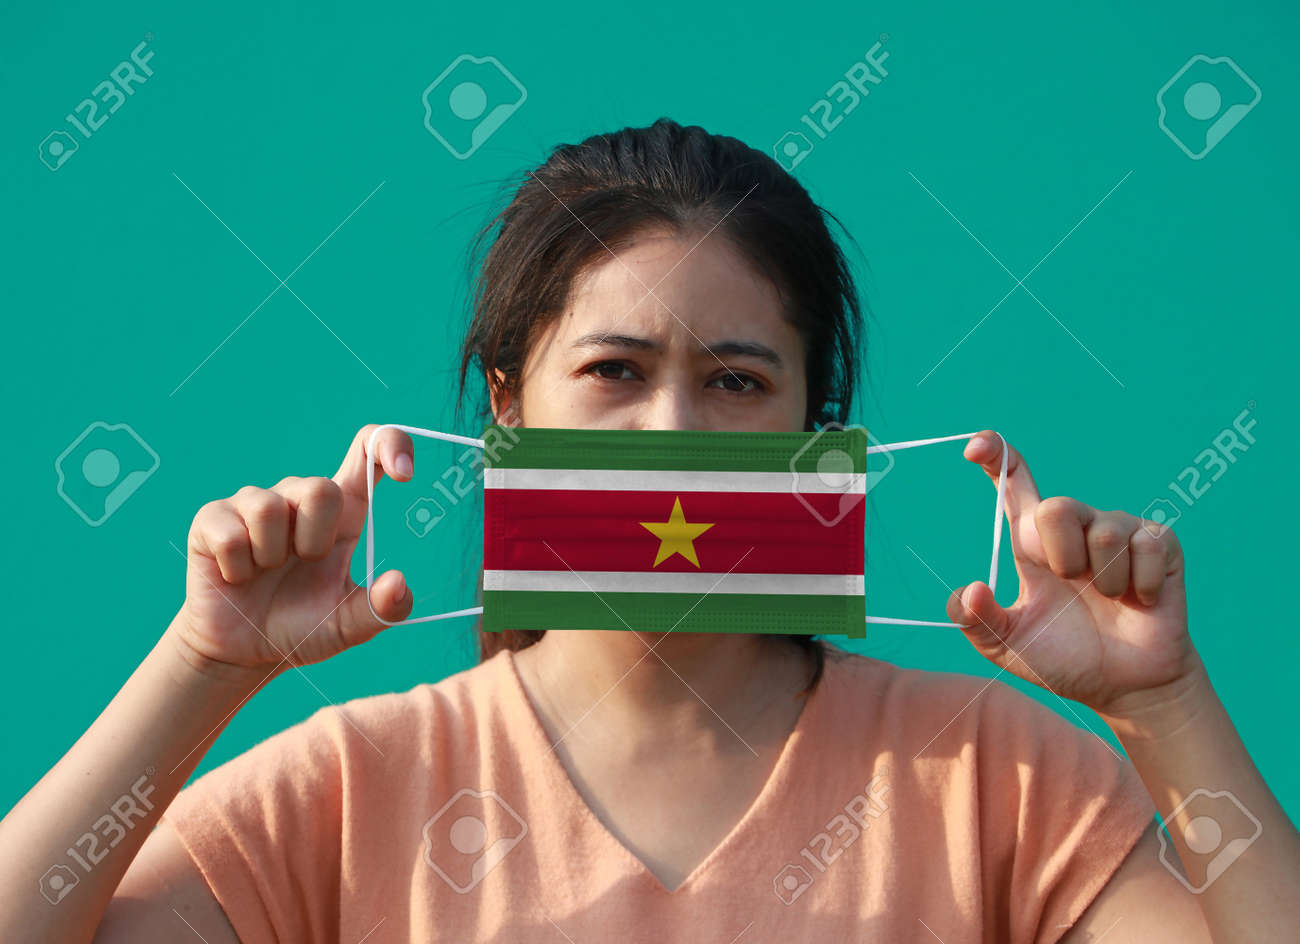 A woman with Suriname flag on hygienic mask in her hand and lifted up the front face on green background. Tiny Particle or virus corona or Covid 19 protection. Concept of Combating illness. - 160156377